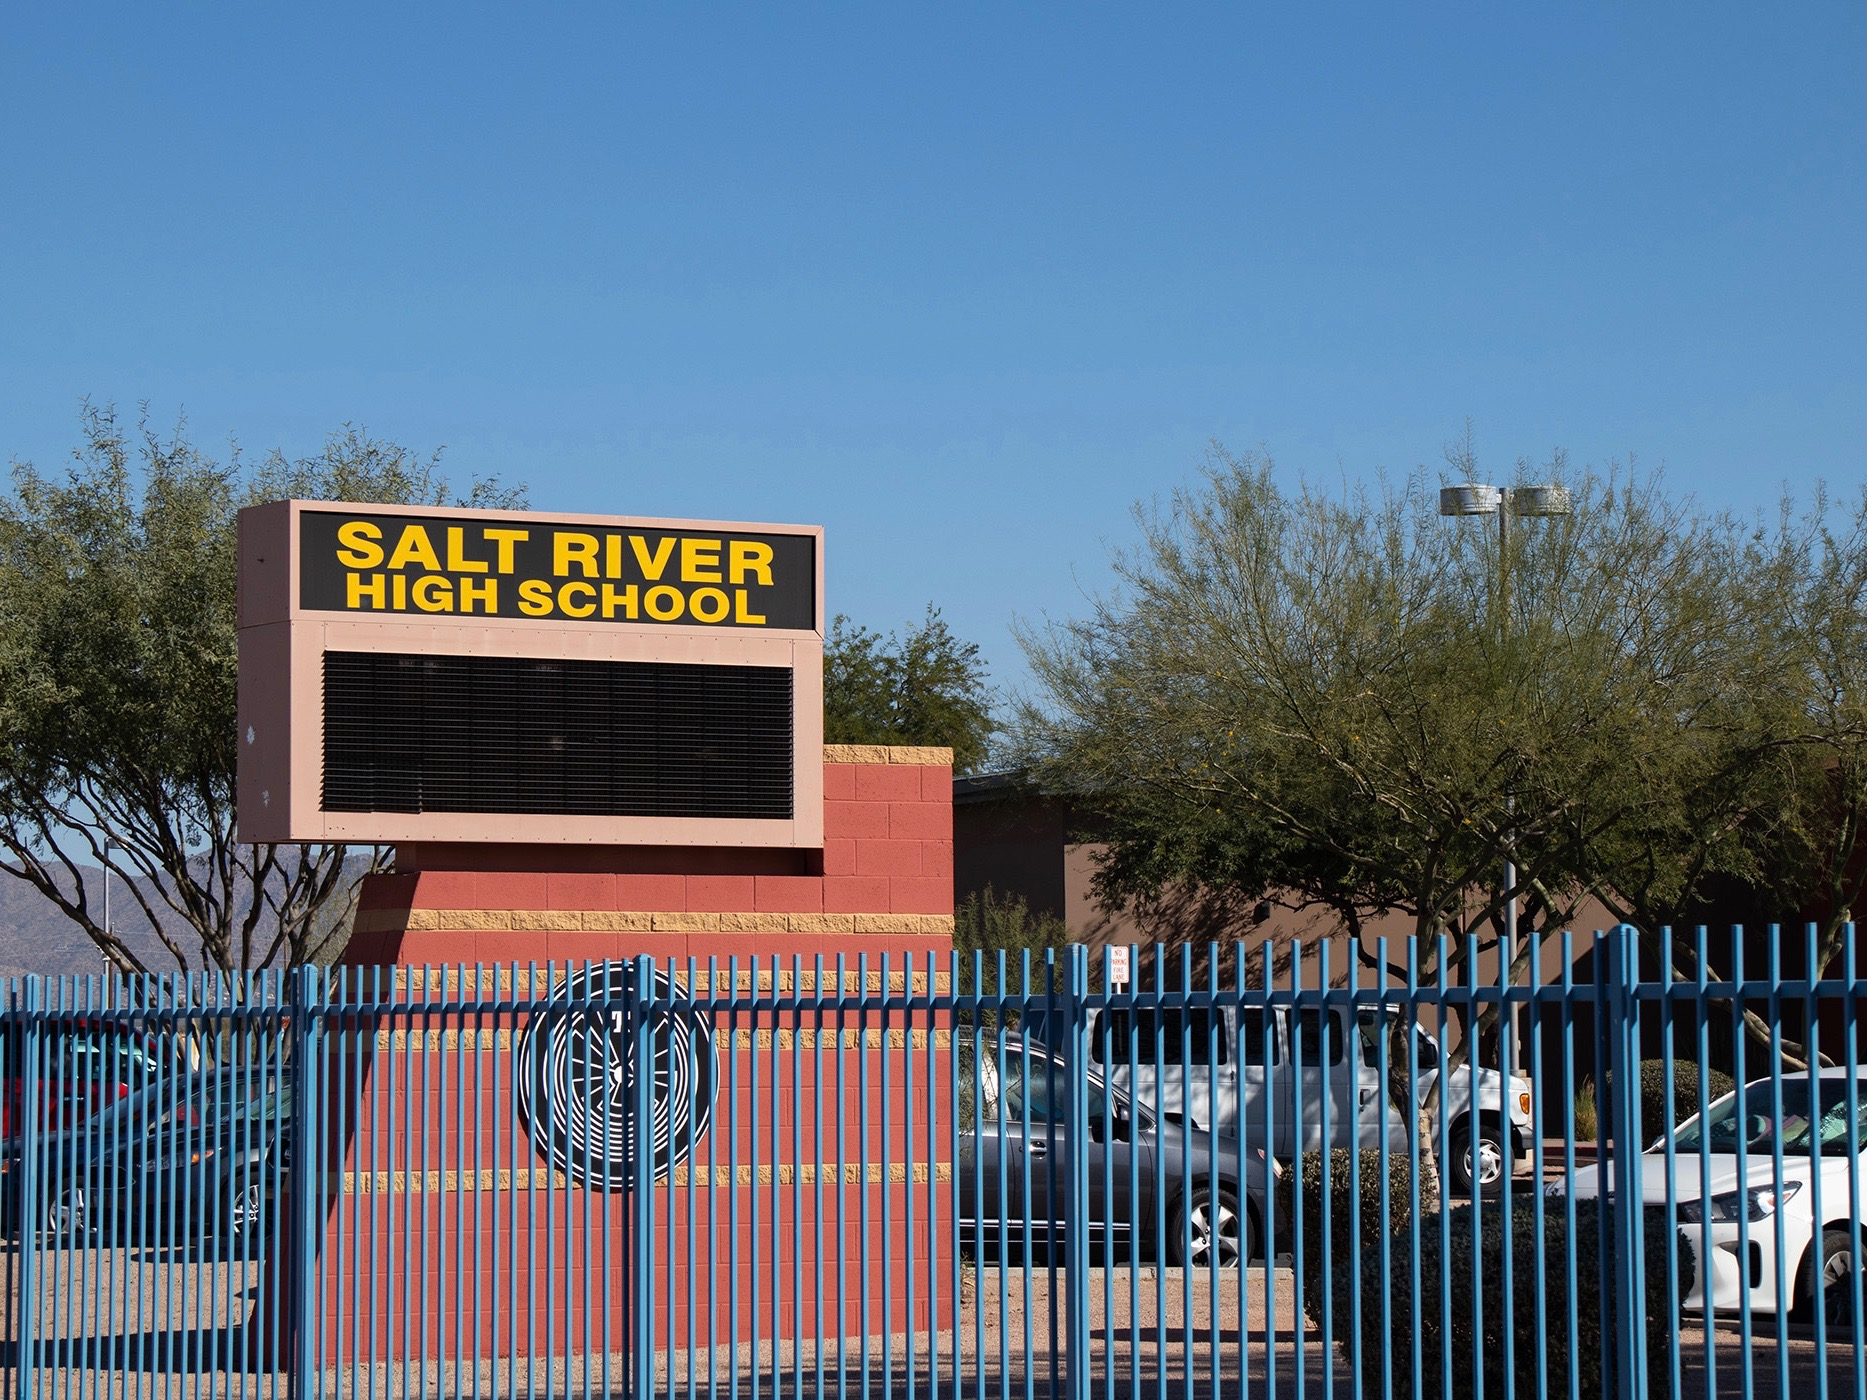 Reaction strong after racist taunts aimed at Salt River Native American high school athletes